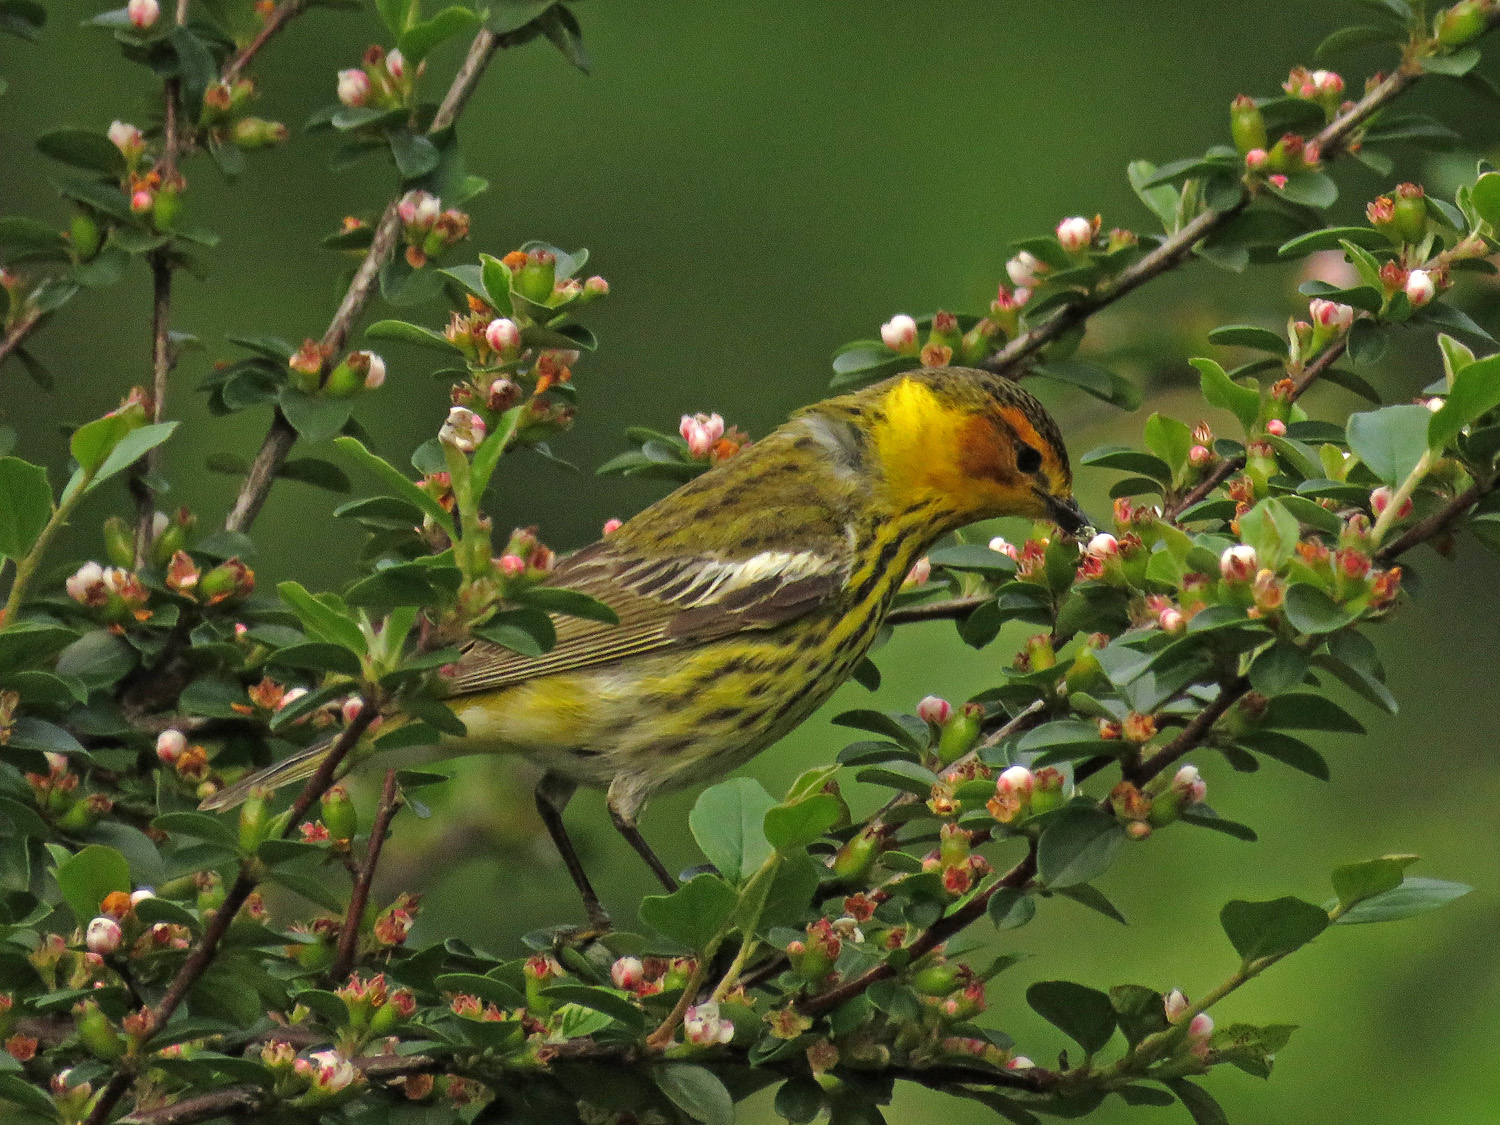 Male Cape May warbler, Central Park, May 20, 2018